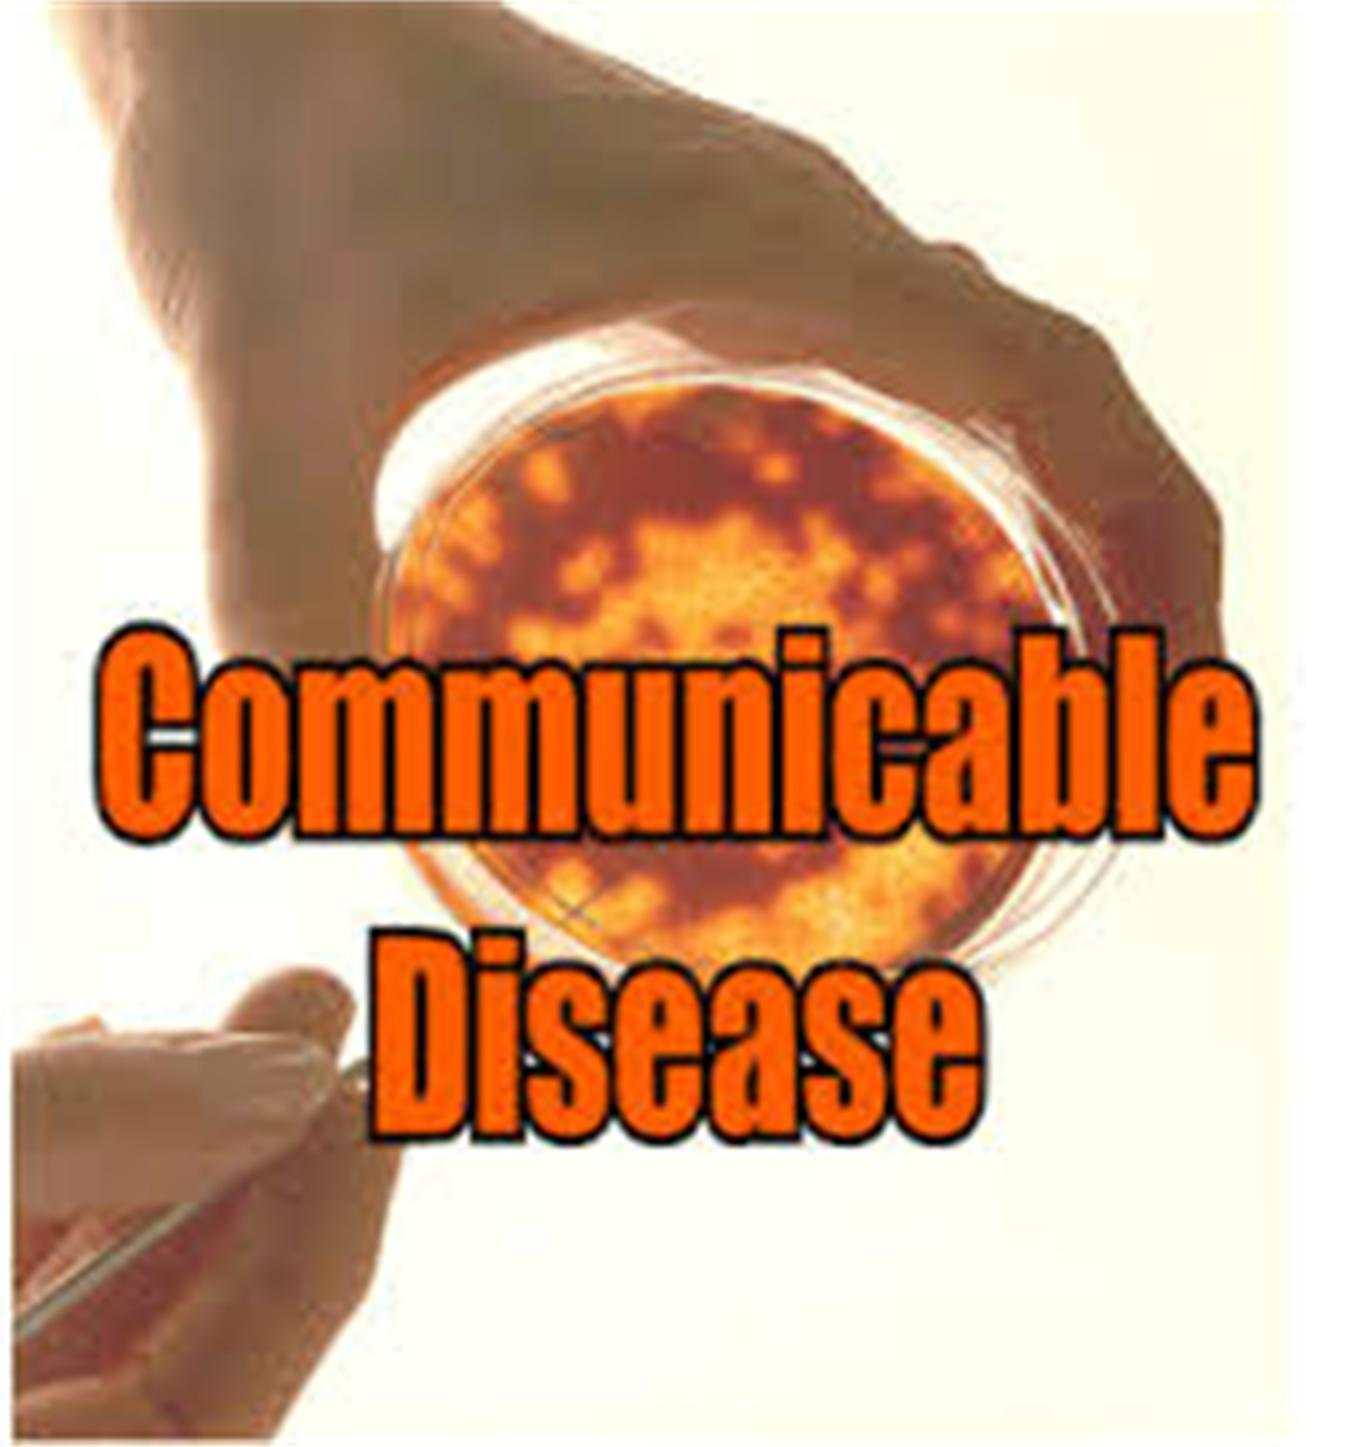 Communicable Diseases, Lice, and Fifth's Disease